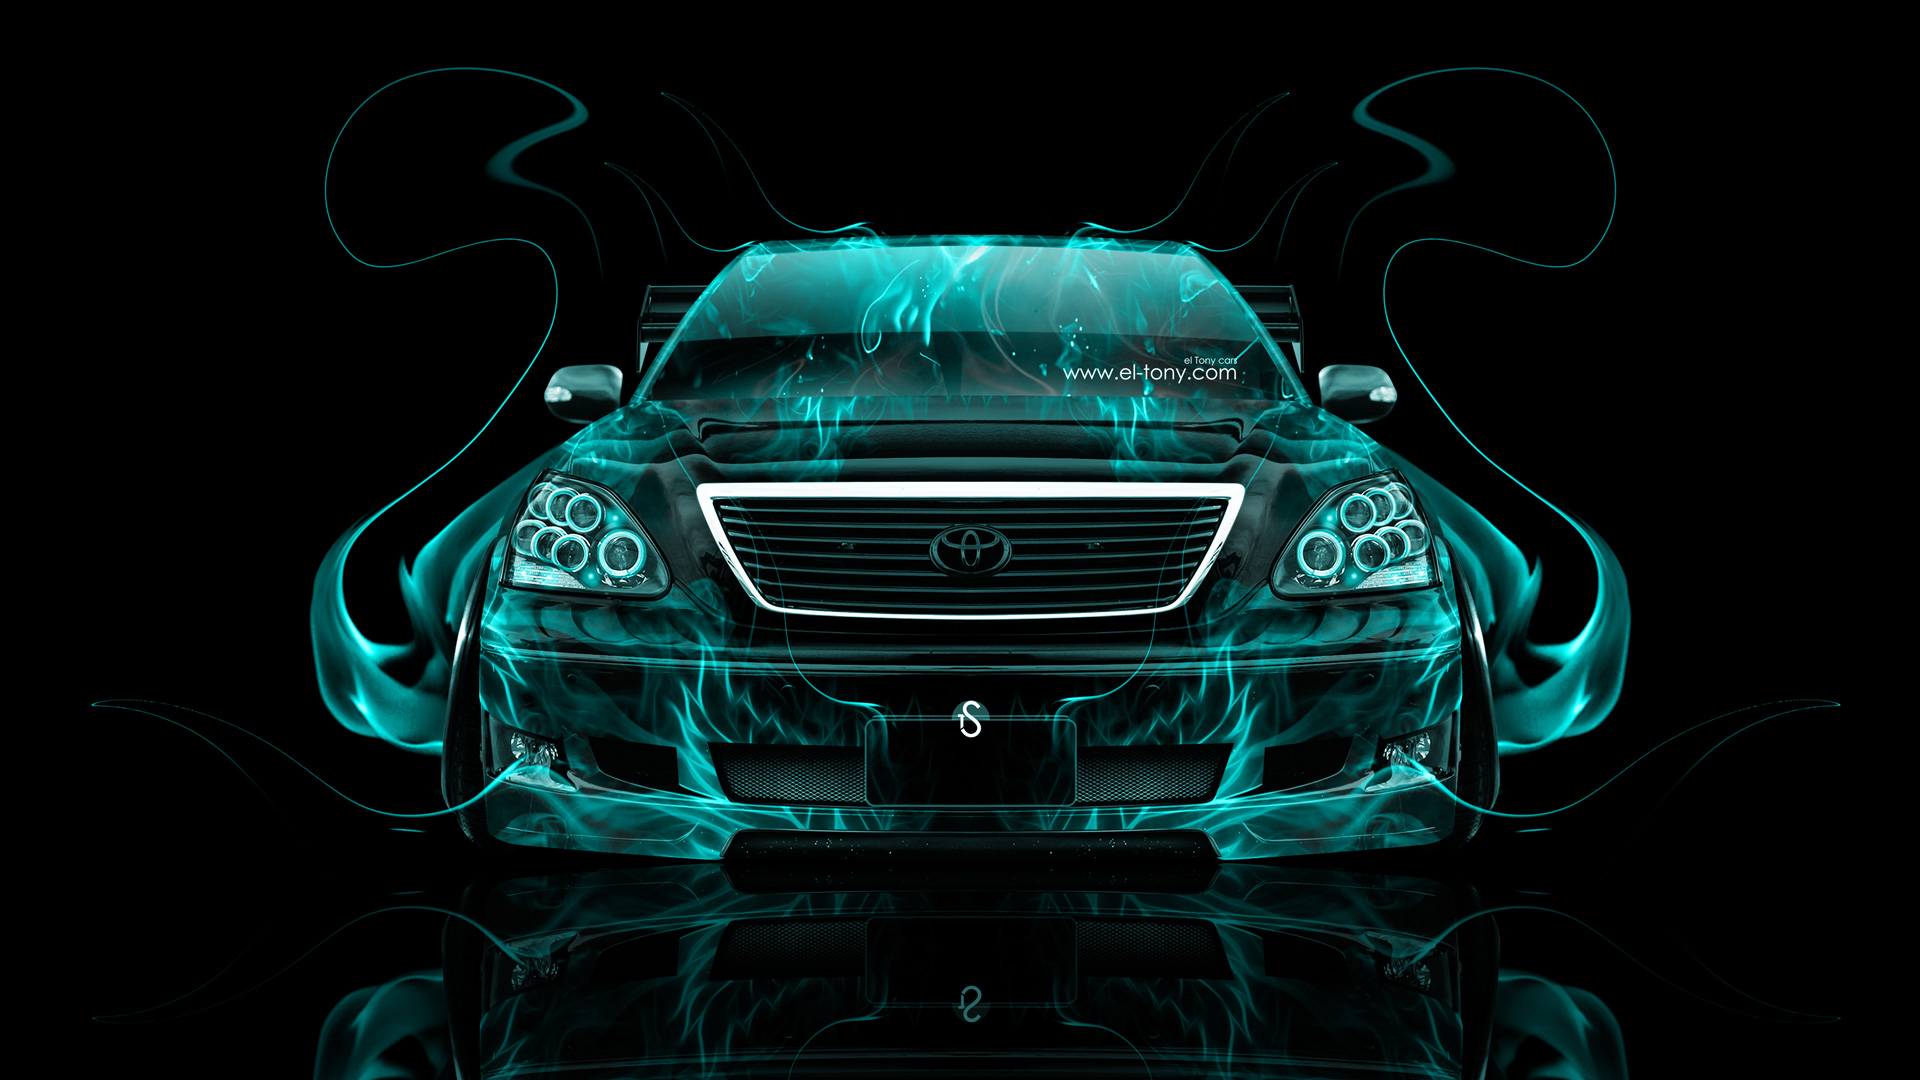 ... Toyota Celsior JDM Tuning Front Azure Fire Car